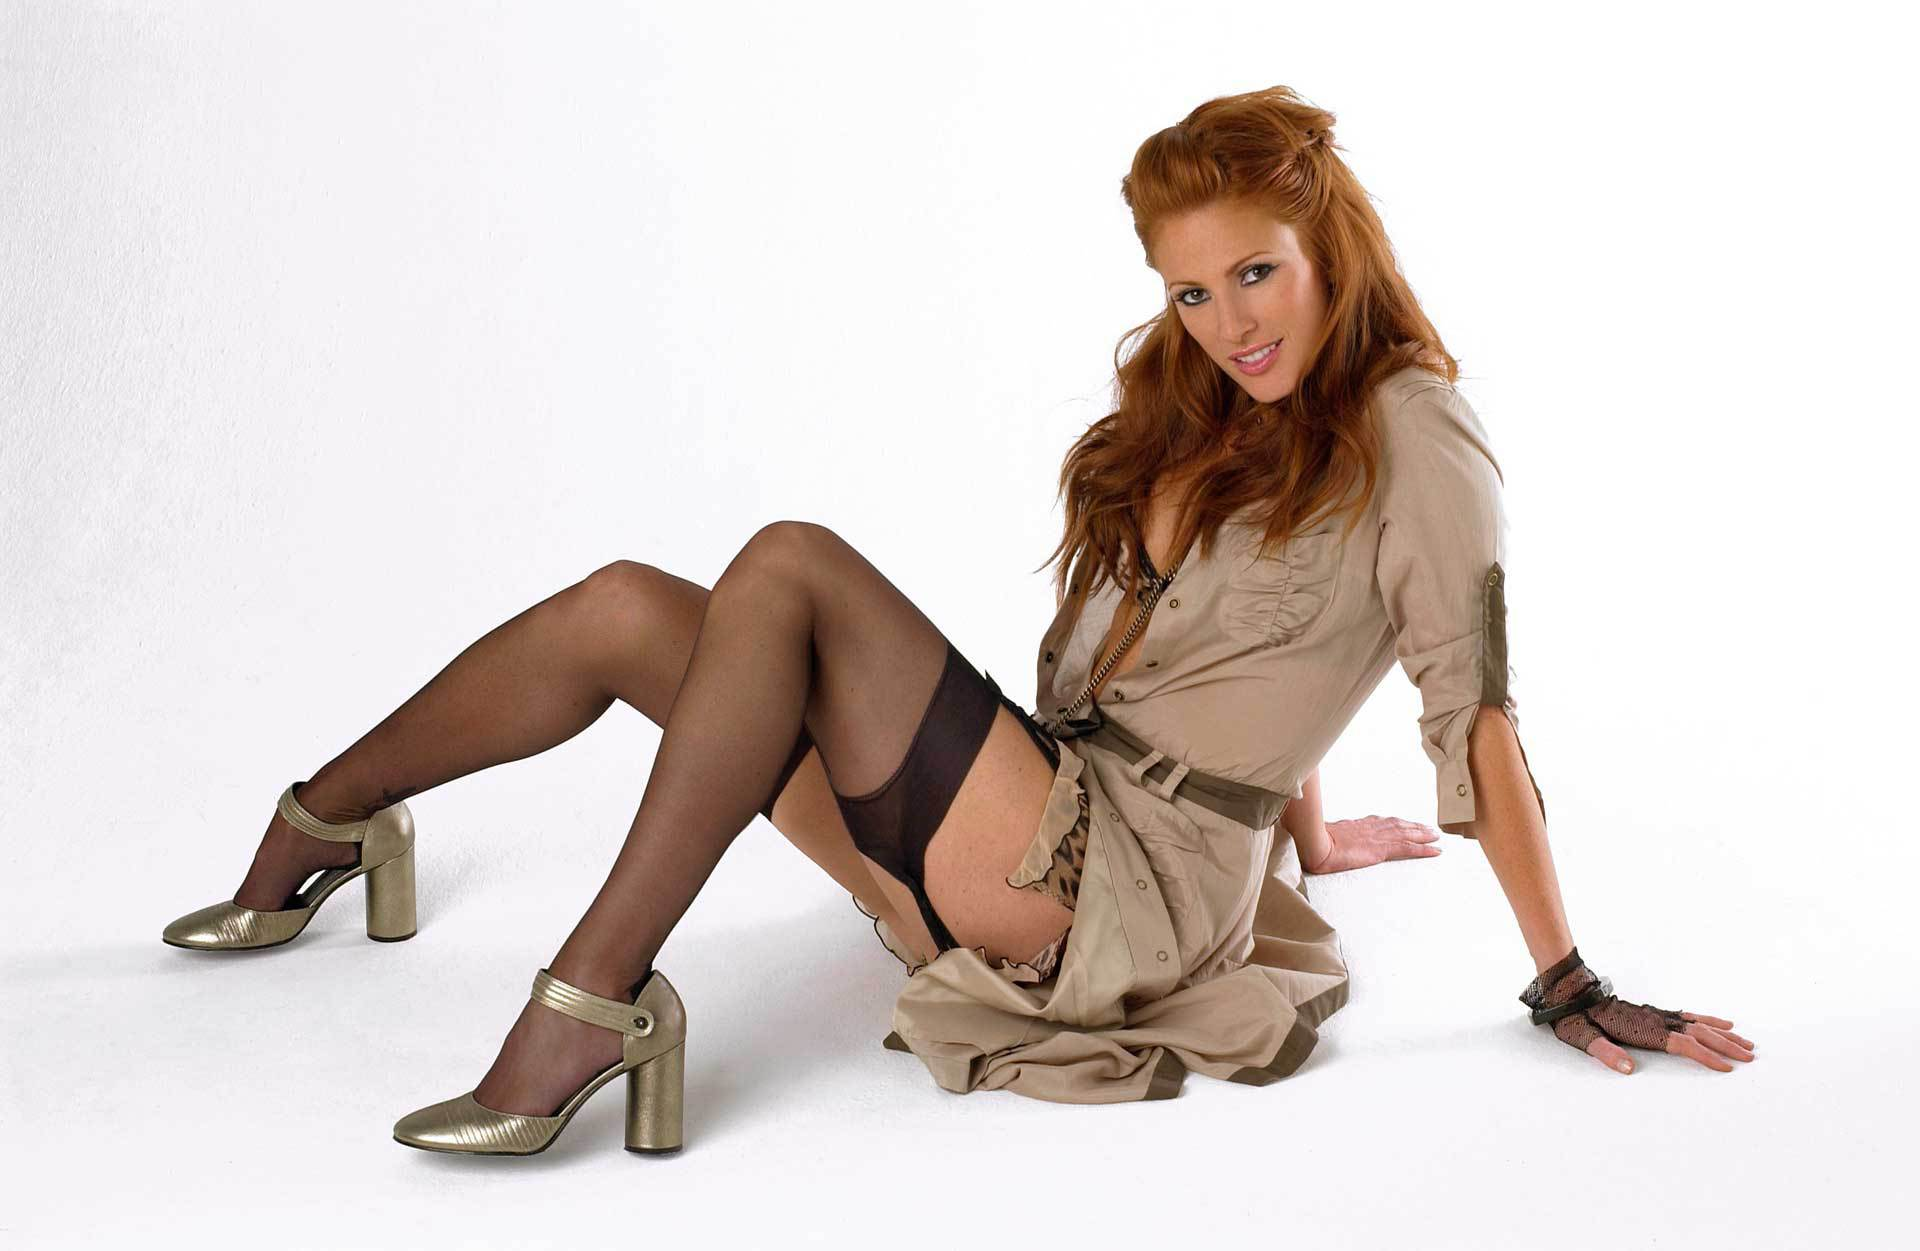 Angie Everhart Wallpapers HD